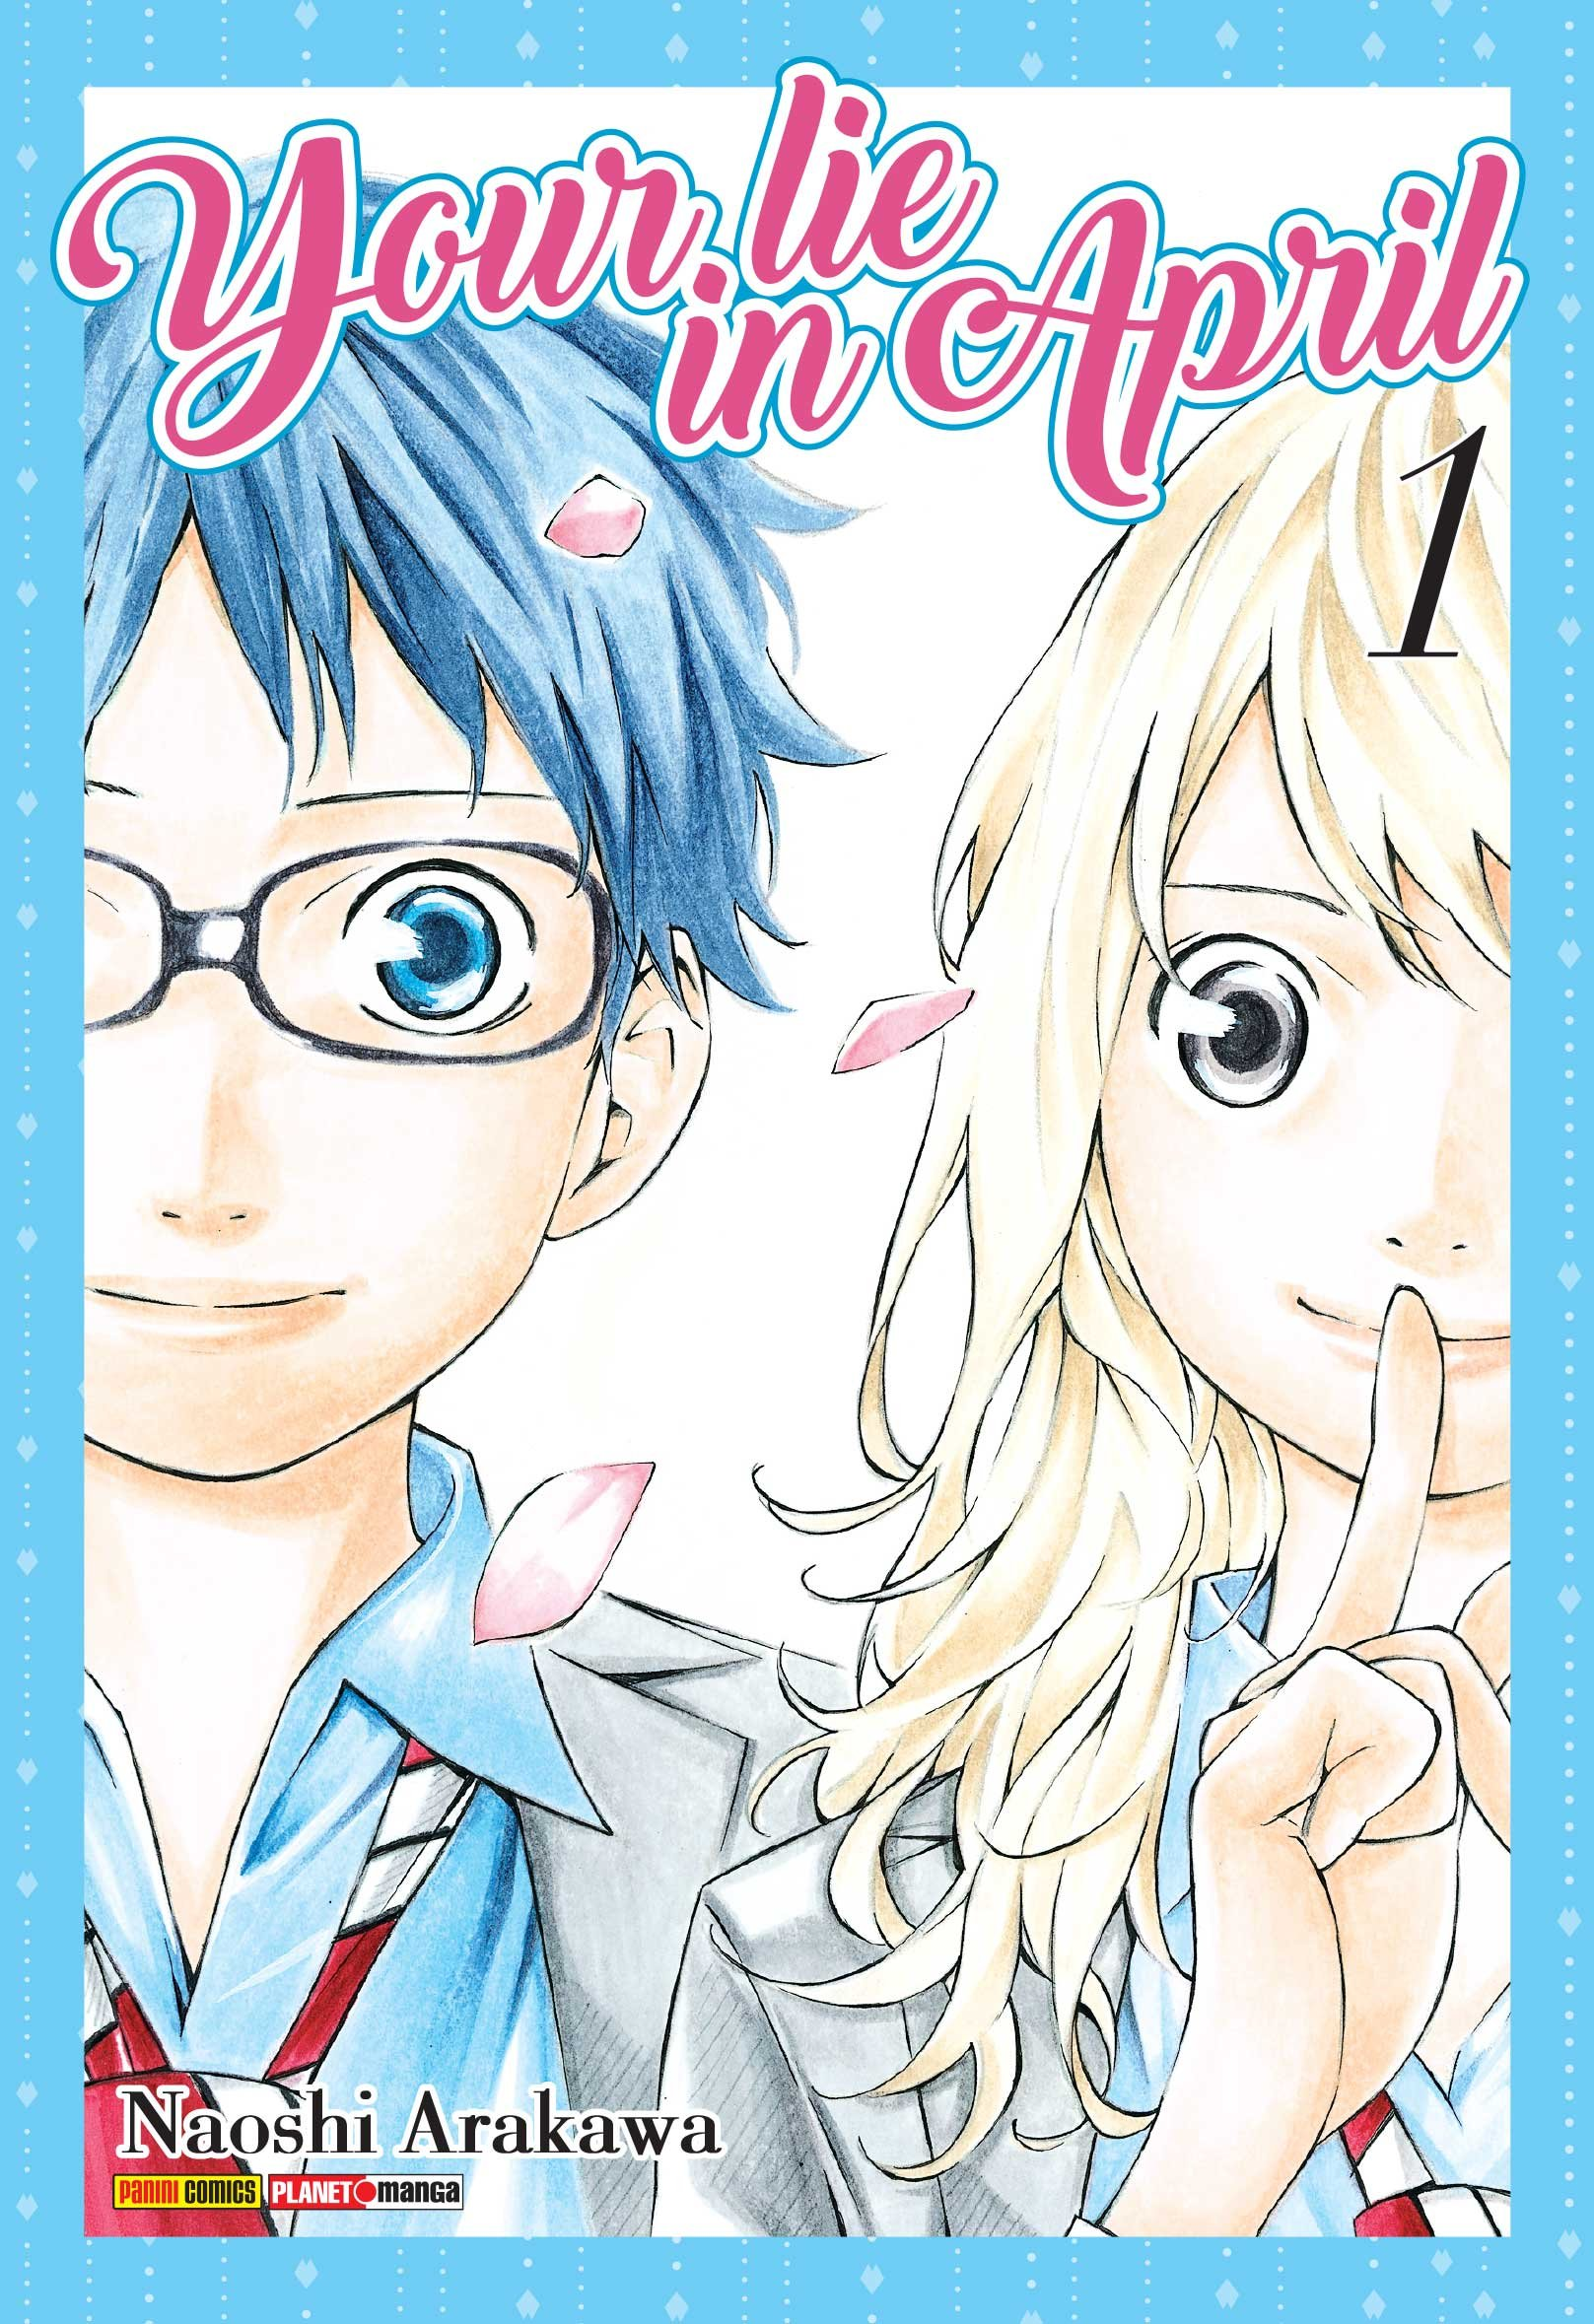 Resenha | Your lie in April #1